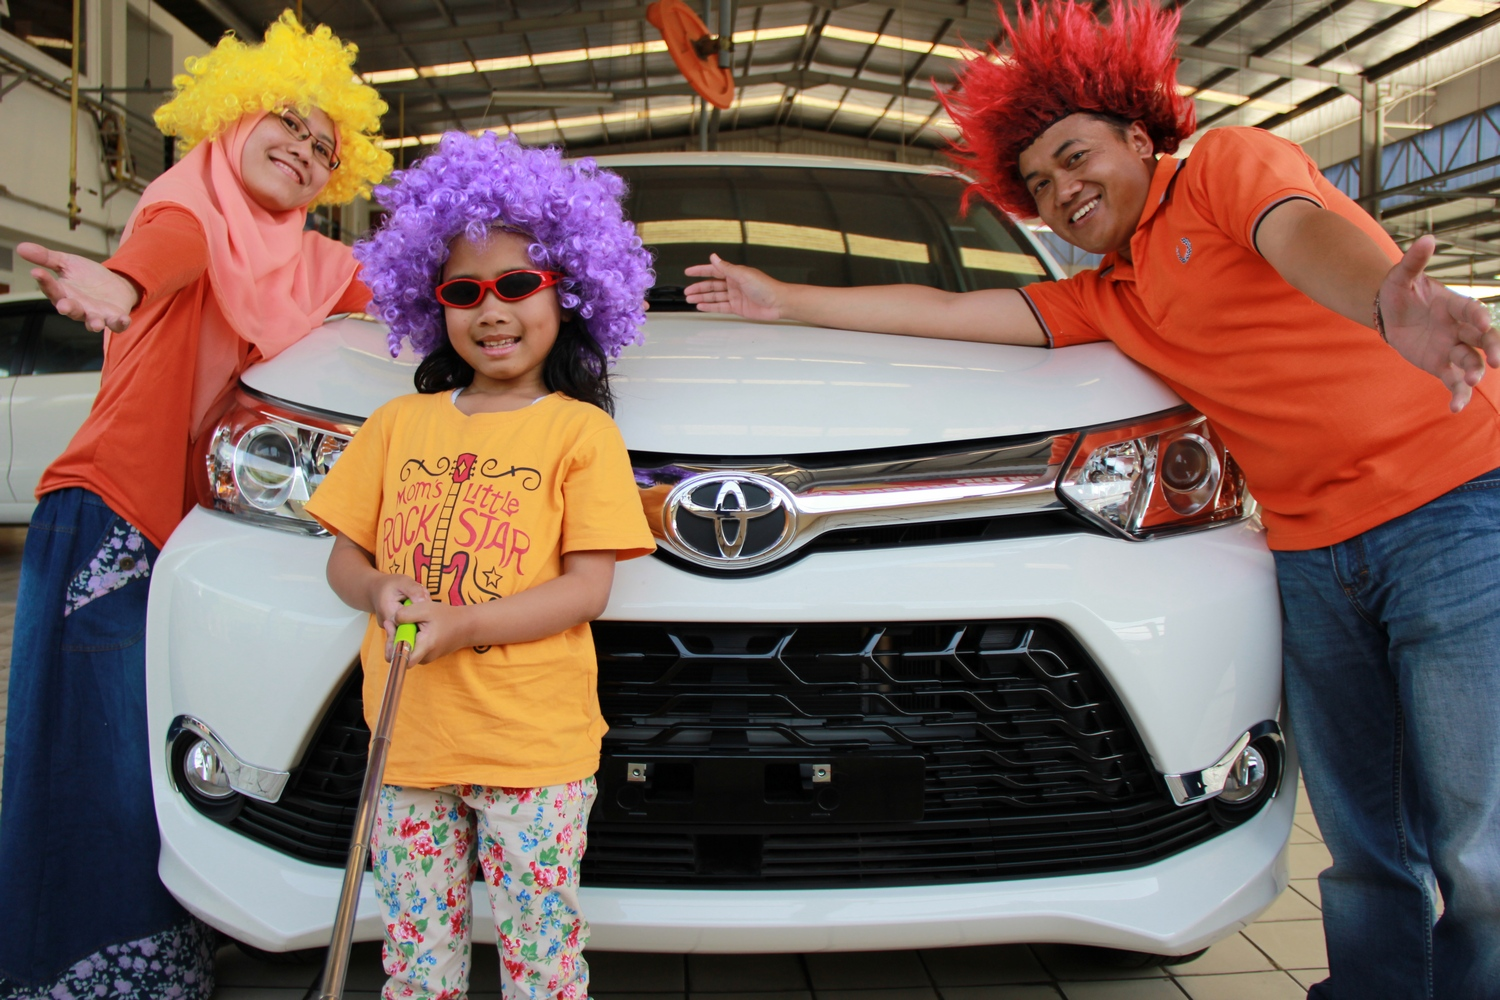 bemper grand new veloz corolla altis video coretan ku xperience the avanza